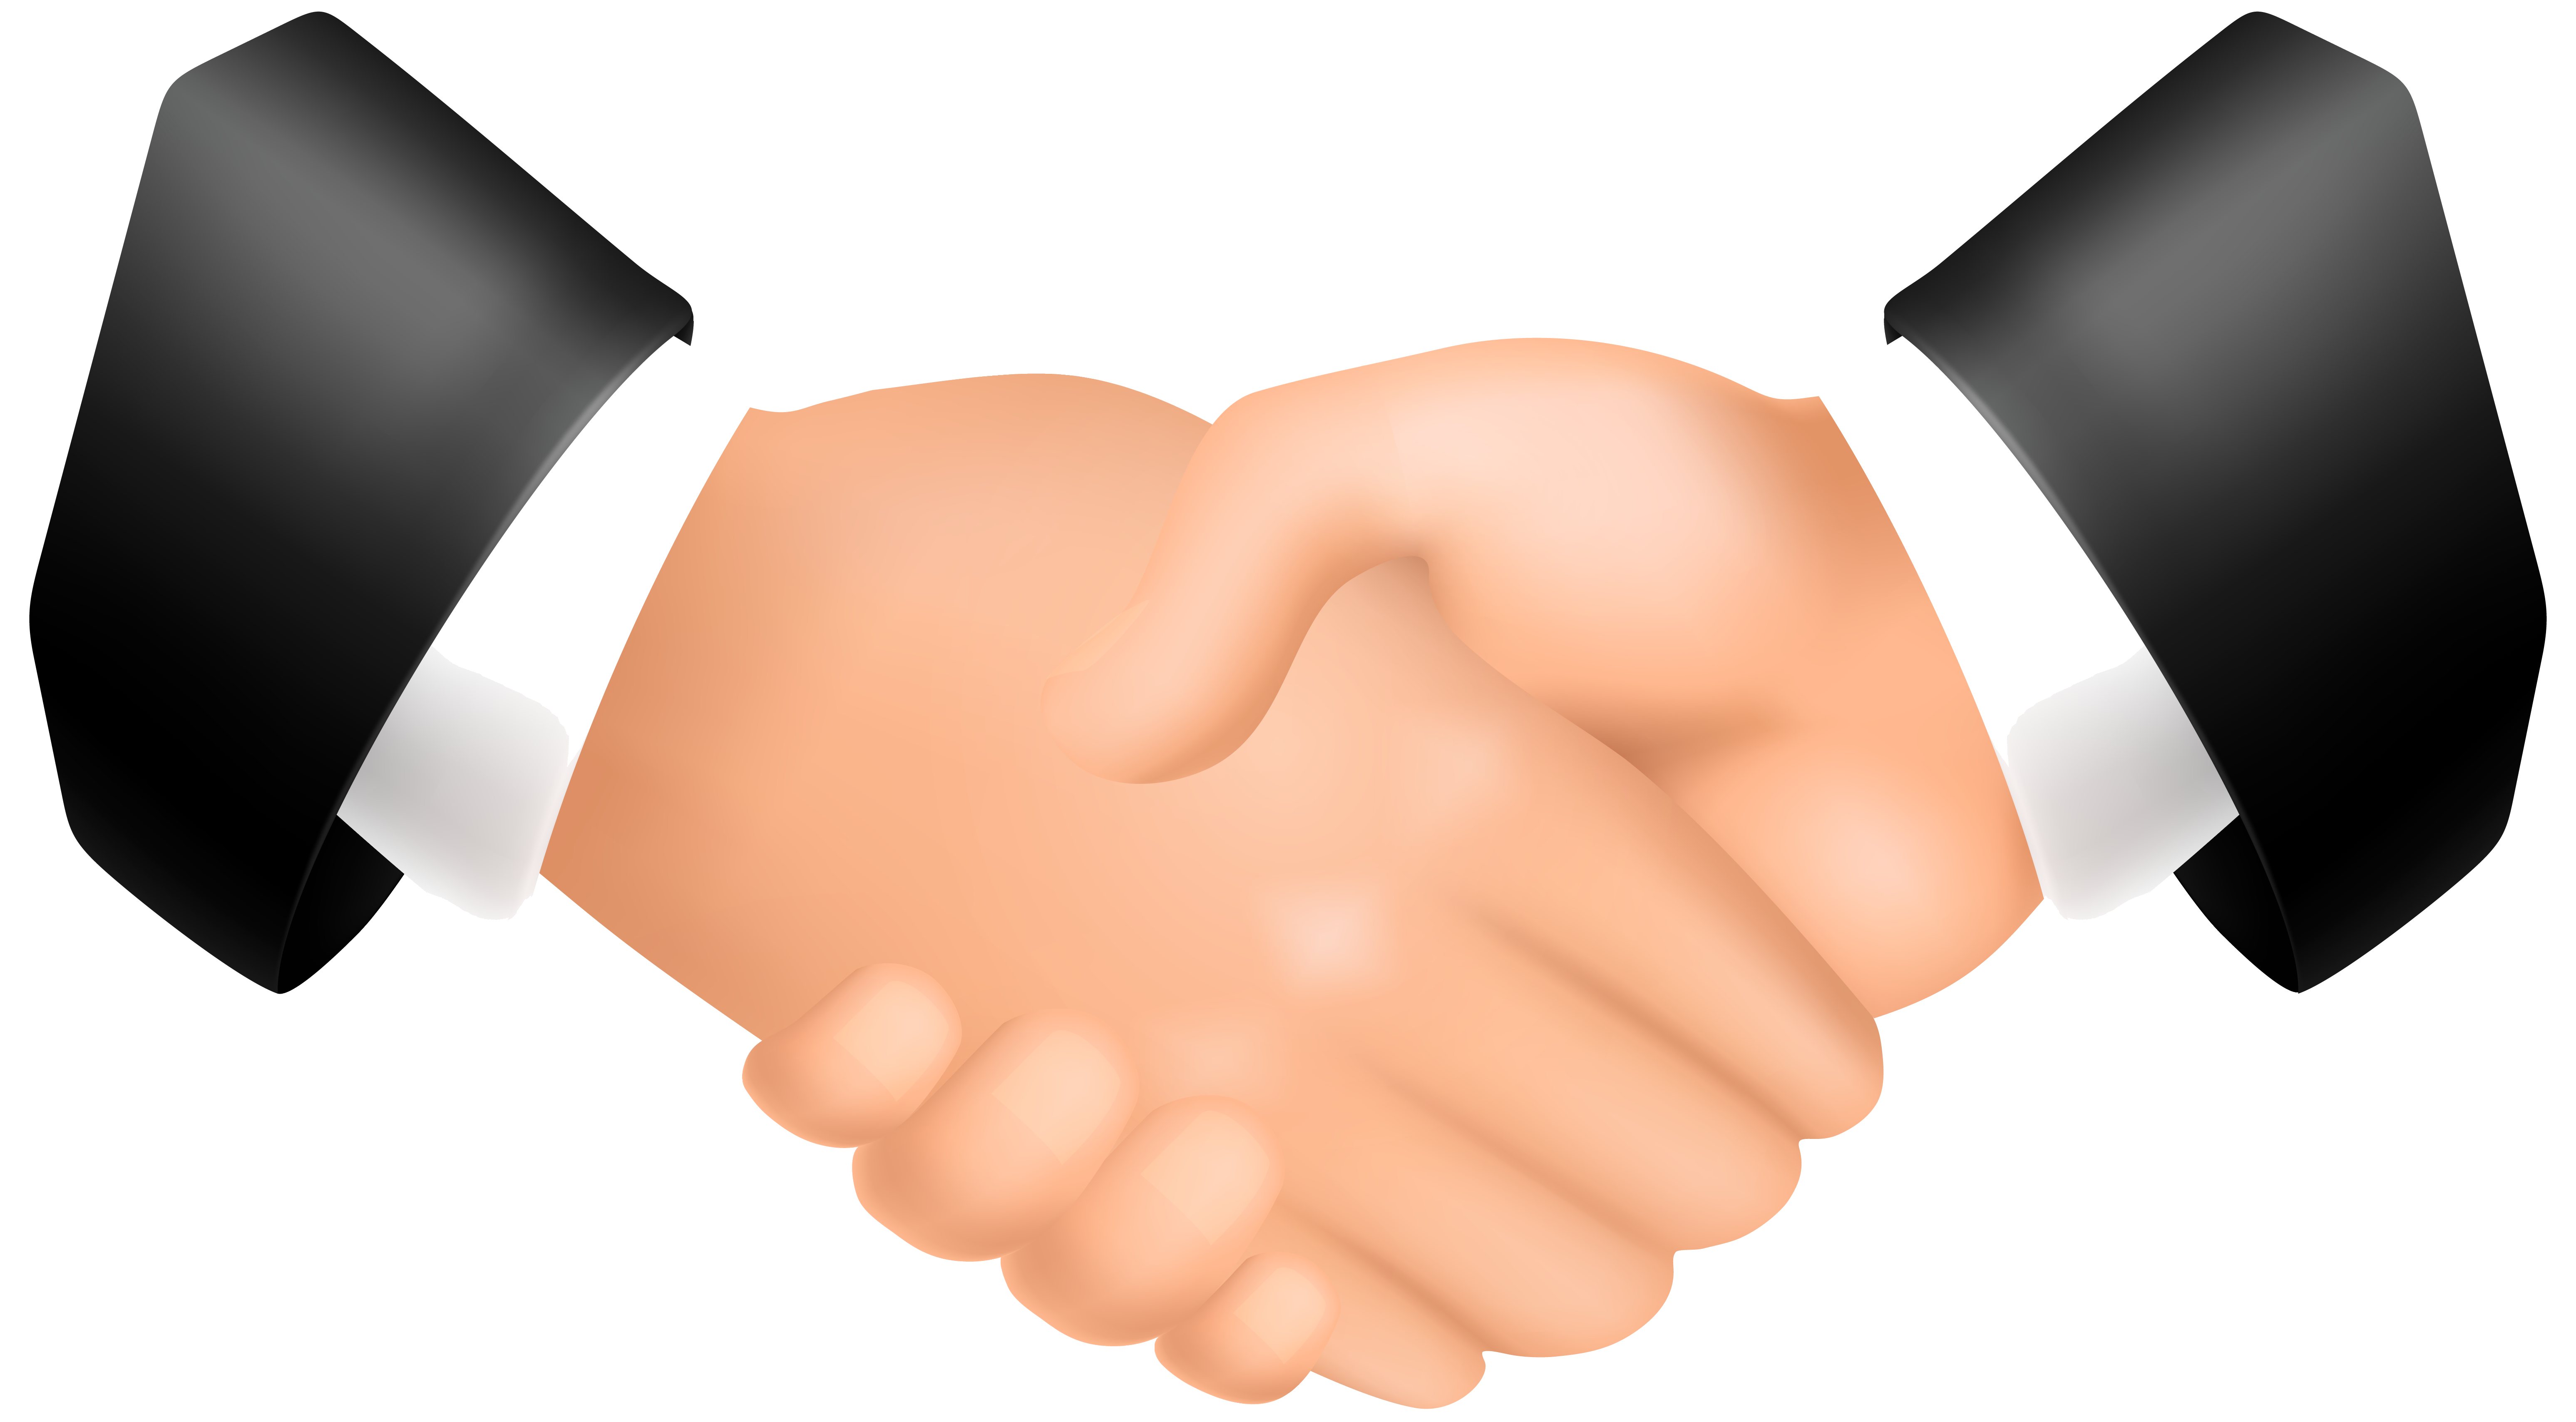 Hand Shake Hands Clip Art Clipart Collection Transparent Png.